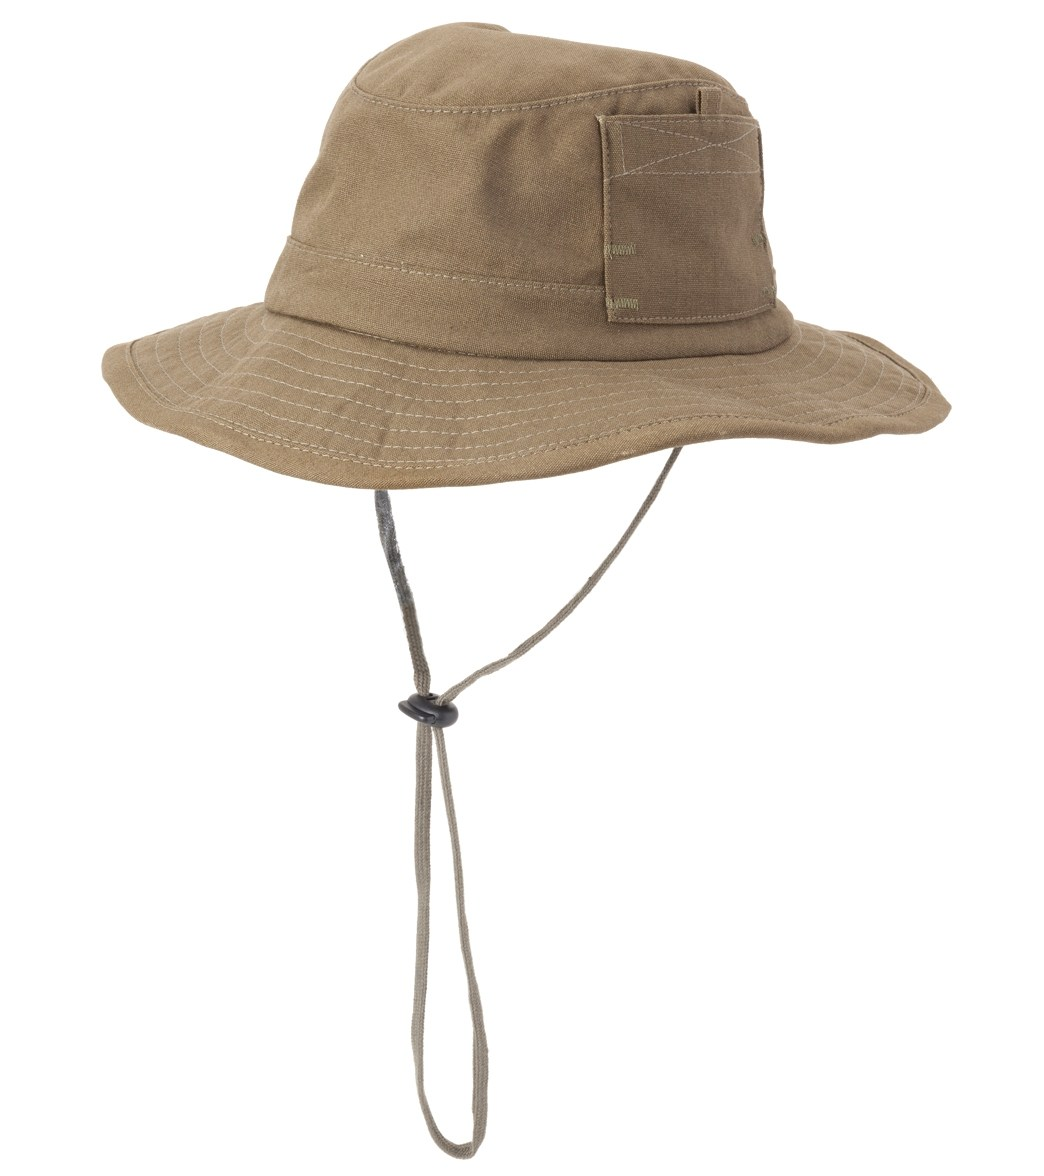 Volcom Men s Woodland Bucket Hat at SwimOutlet.com ad3ebed9952